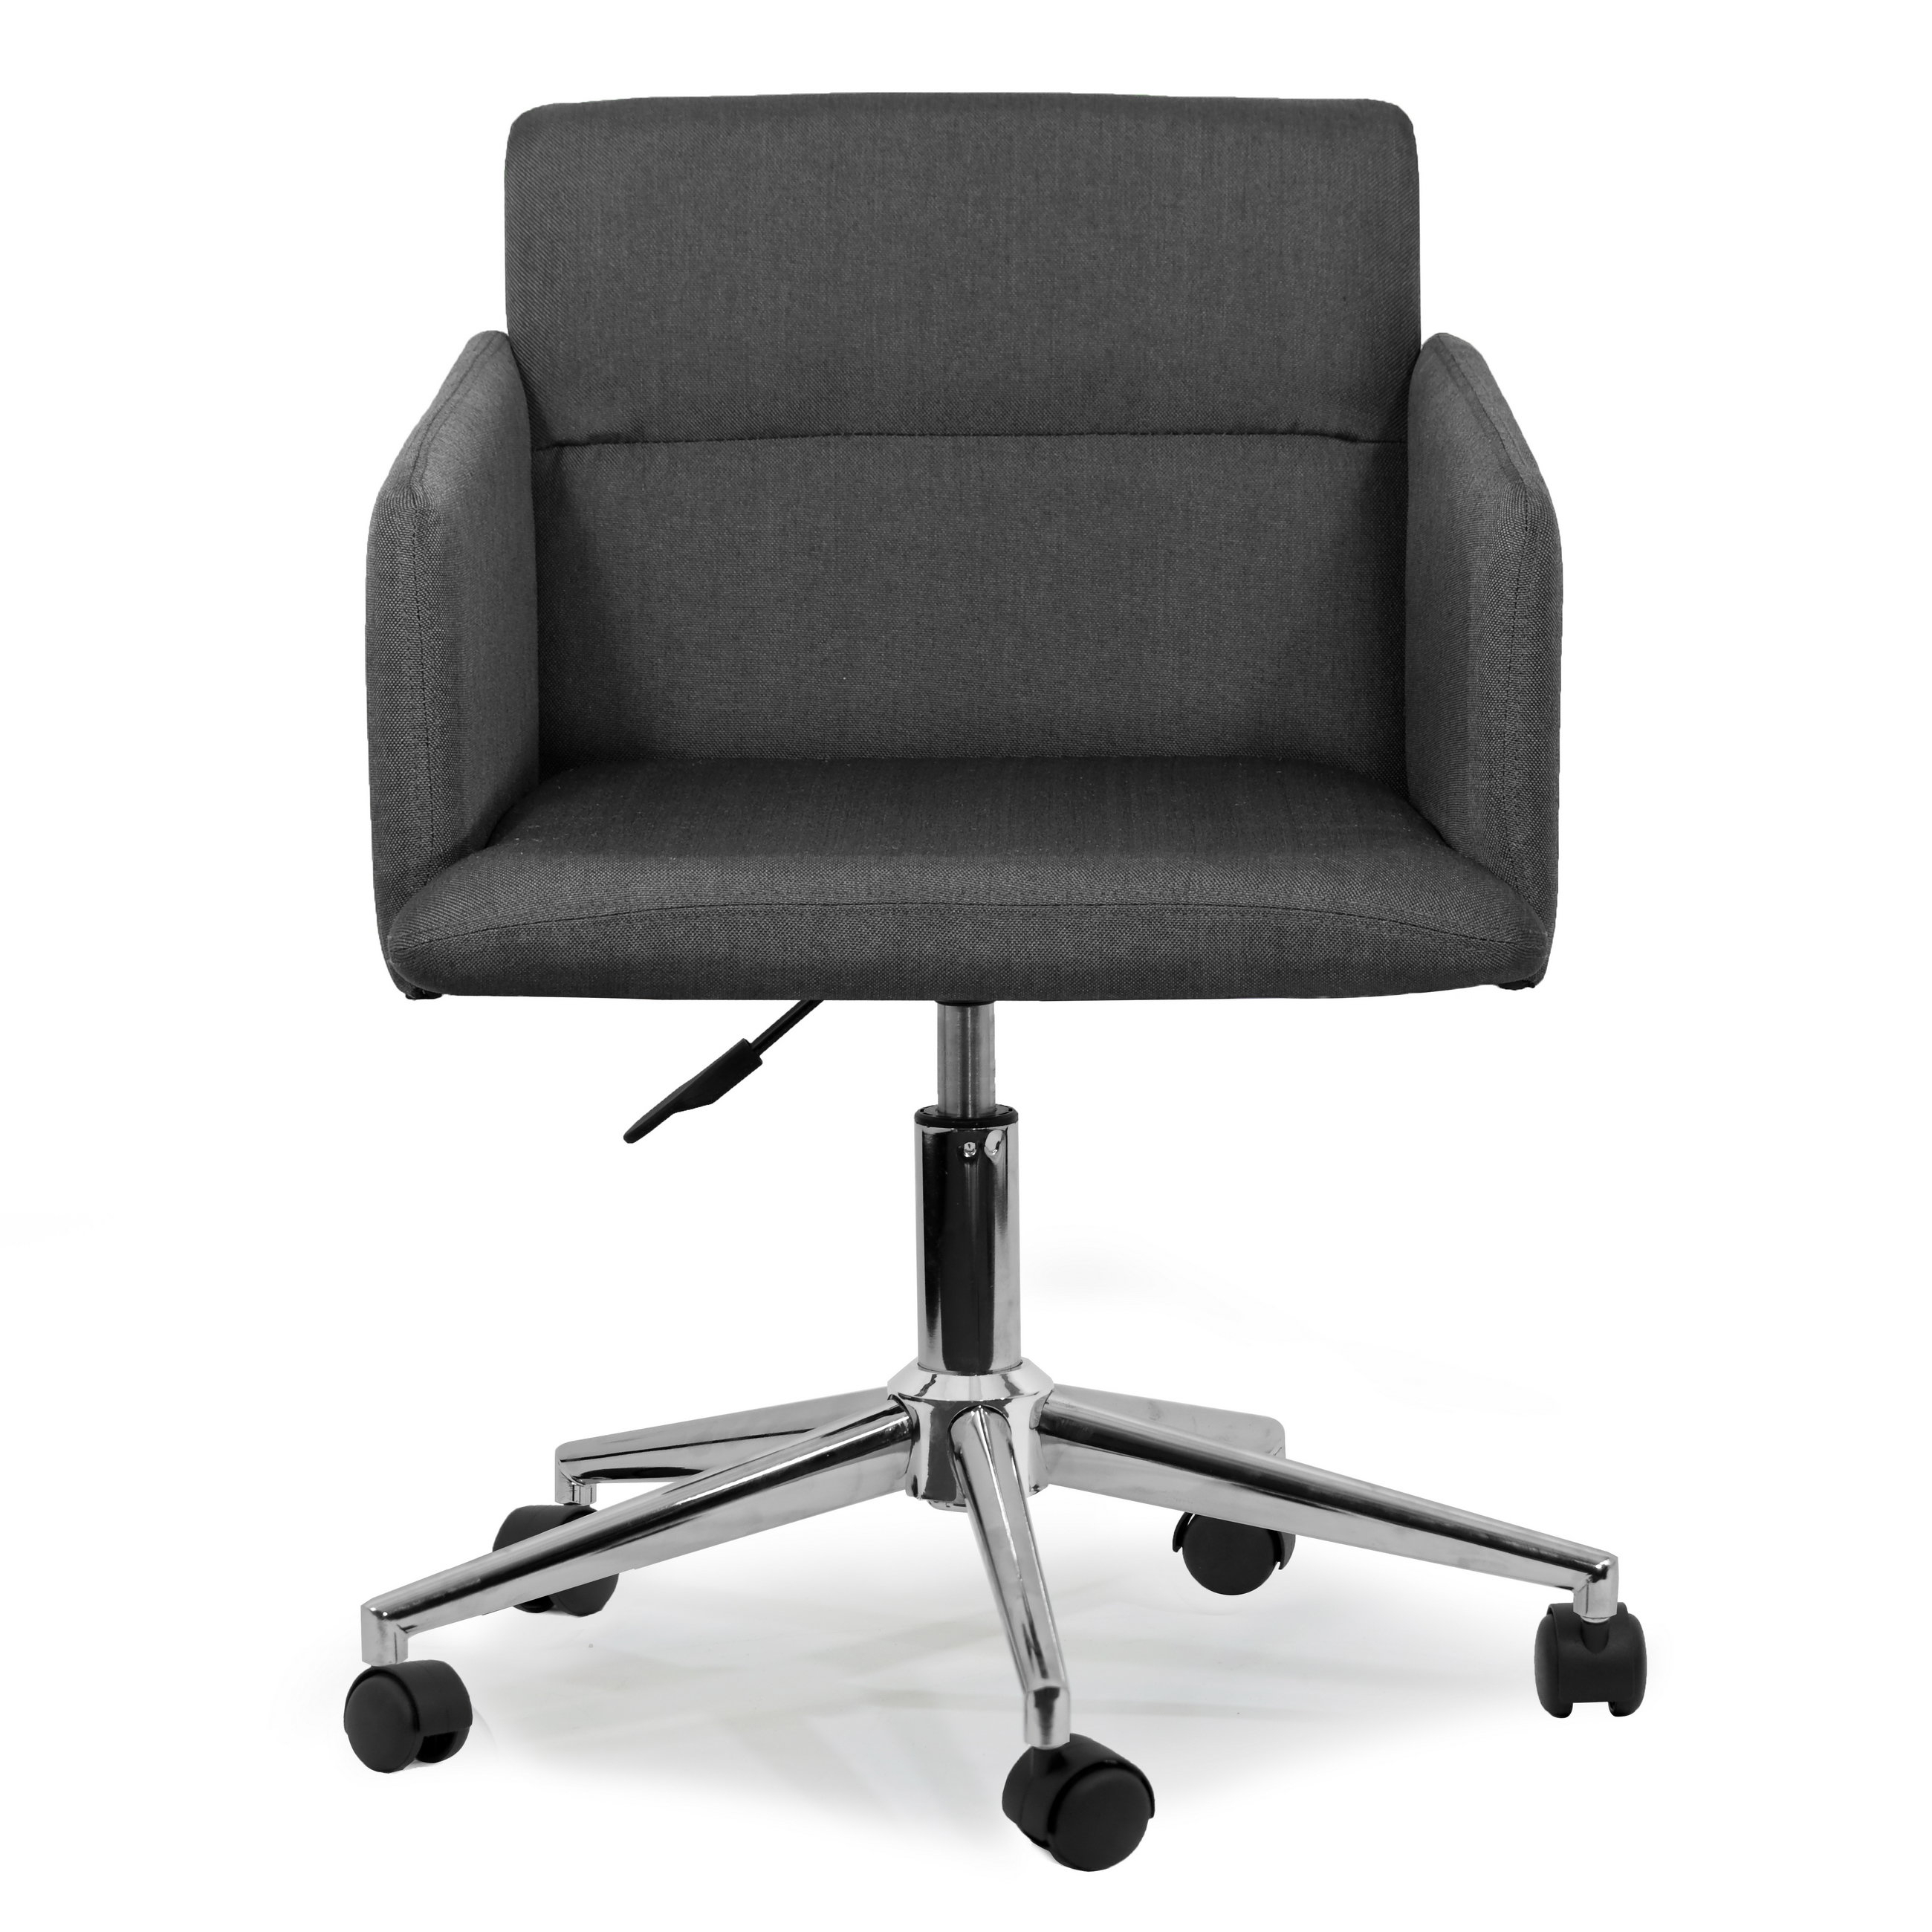 Glamour Home Decor Aila Low-Back Desk Chair | Wayfair intended for Aidan Ii Swivel Accent Chairs